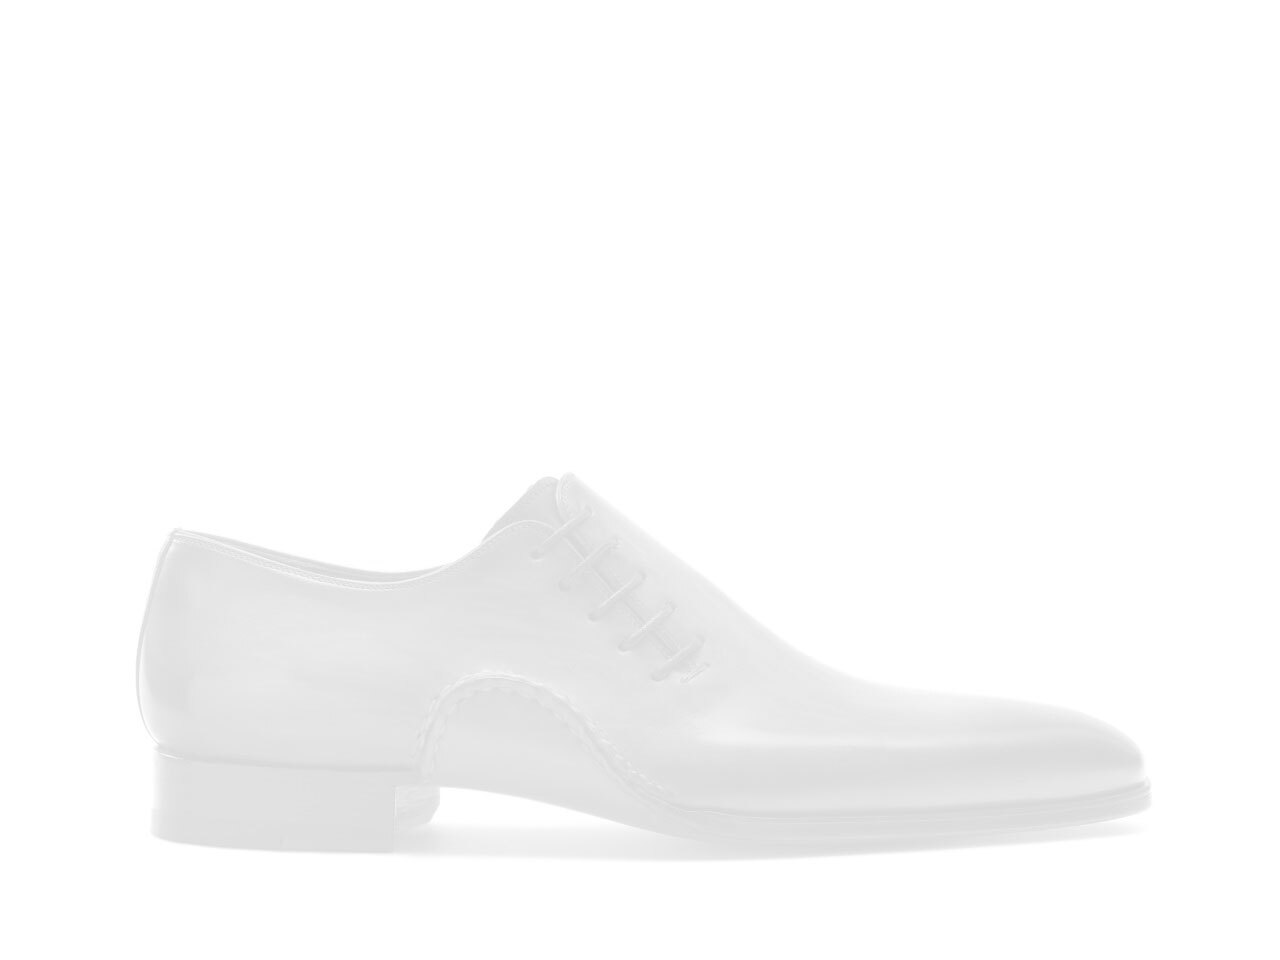 Sole of the Magnanni Lizandro Cuero Men's Sneakers